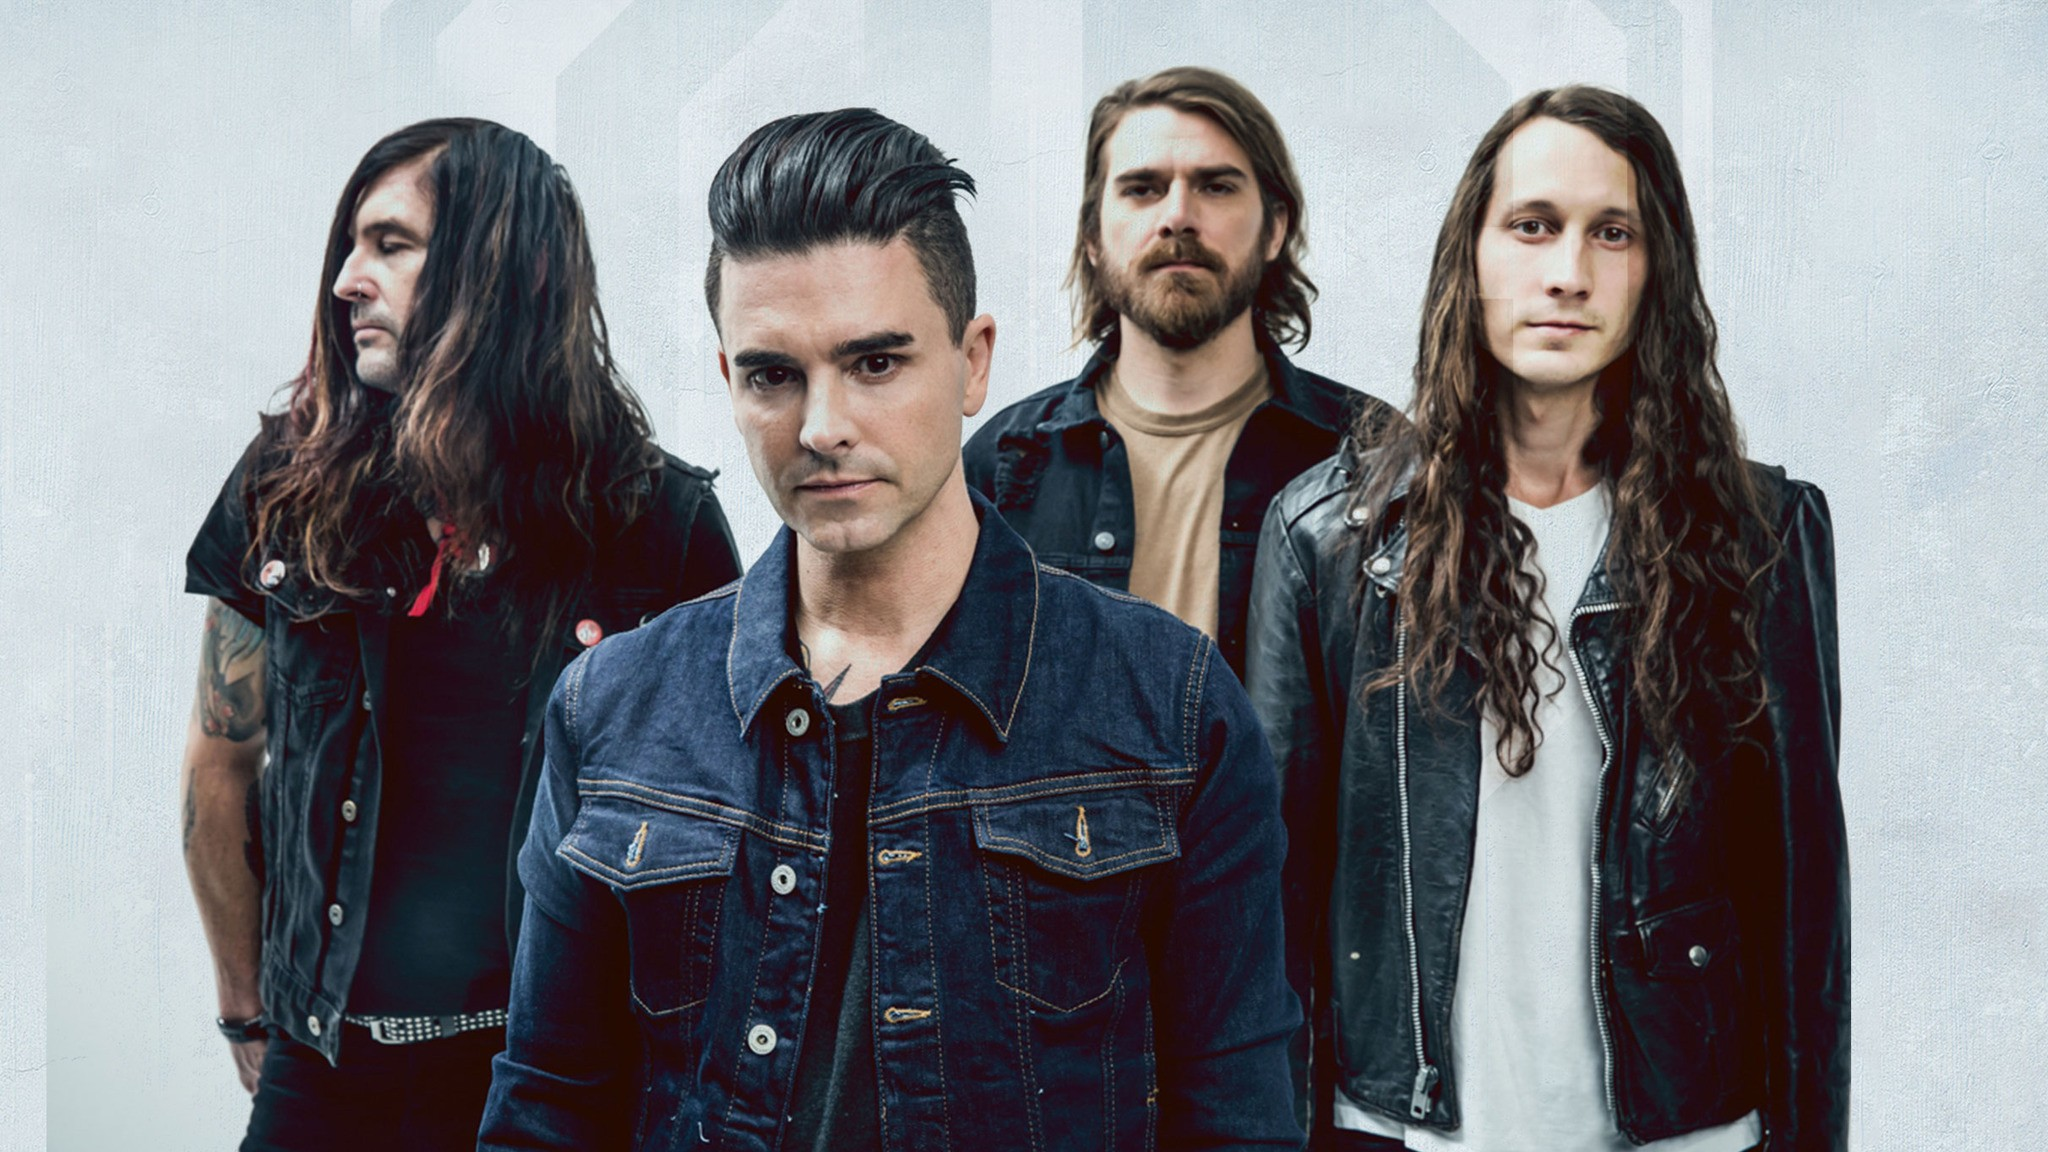 INTERVIEW: Chris Carabba discusses Dashboard Confessional's hiatus, 'Crooked Shadows,' and more